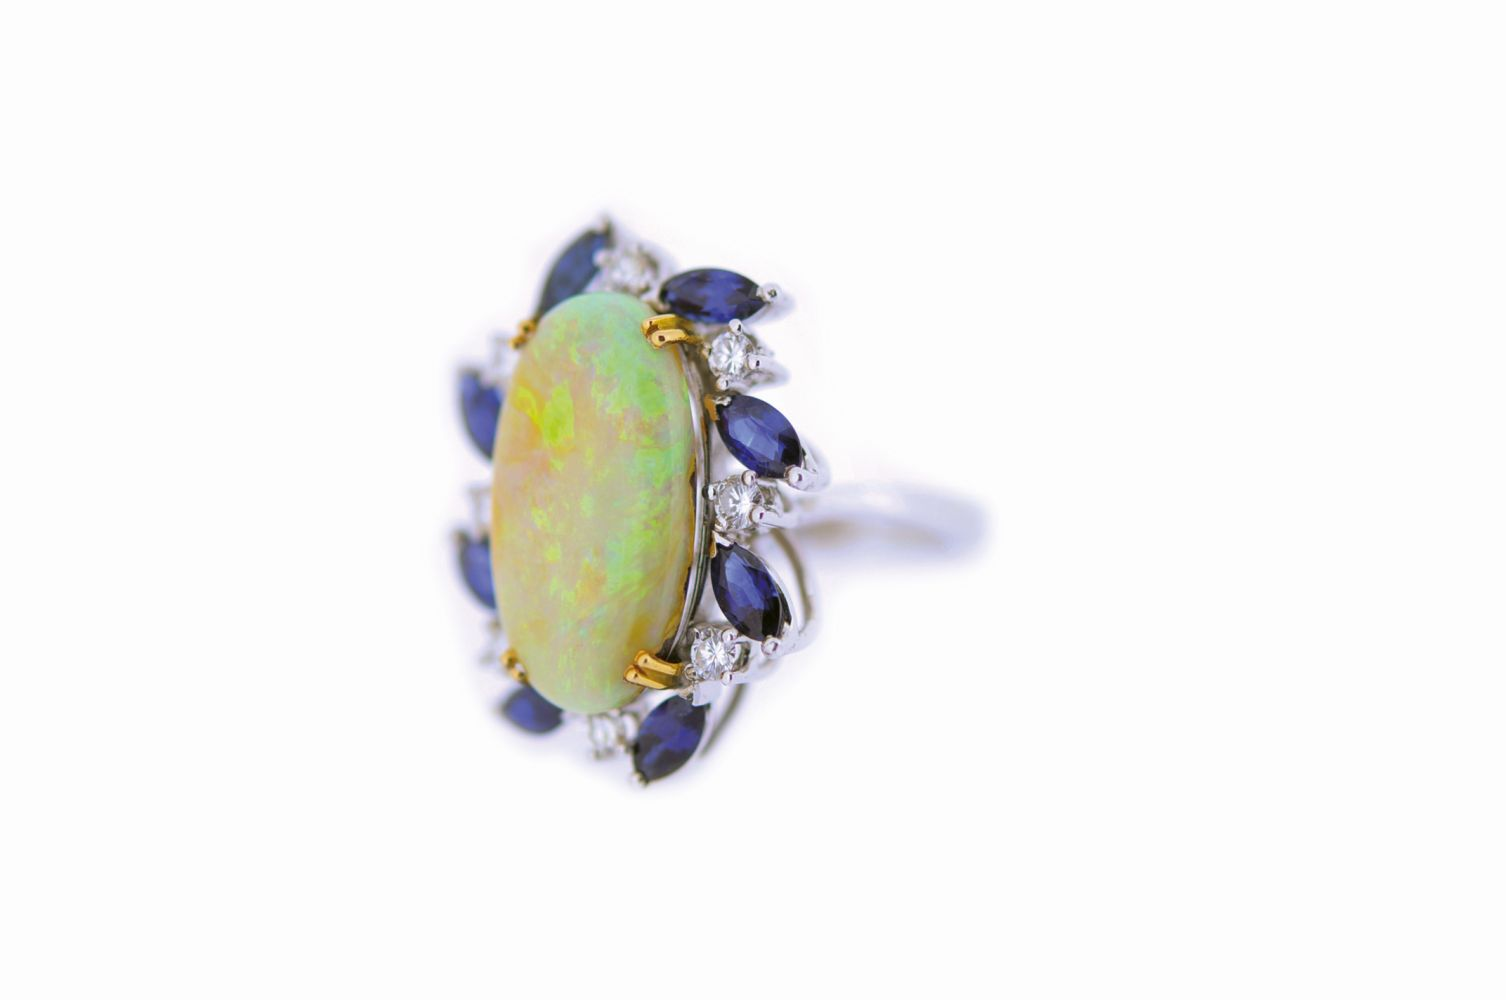 #42 Opal Ring | Opalring Image